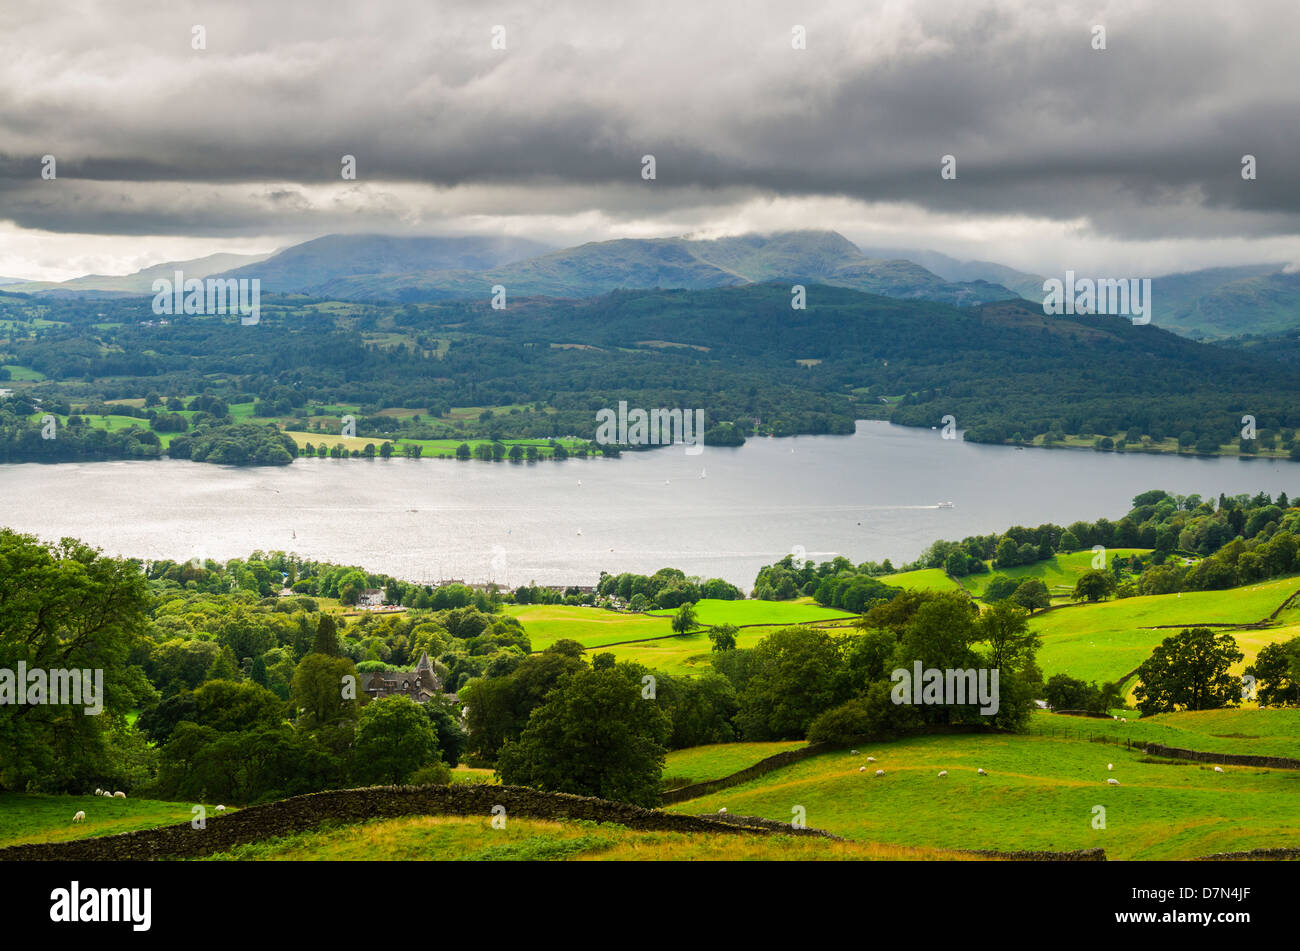 The lake of Windermere viewed from Wansfell in the Lake District, Cumbria, England. - Stock Image